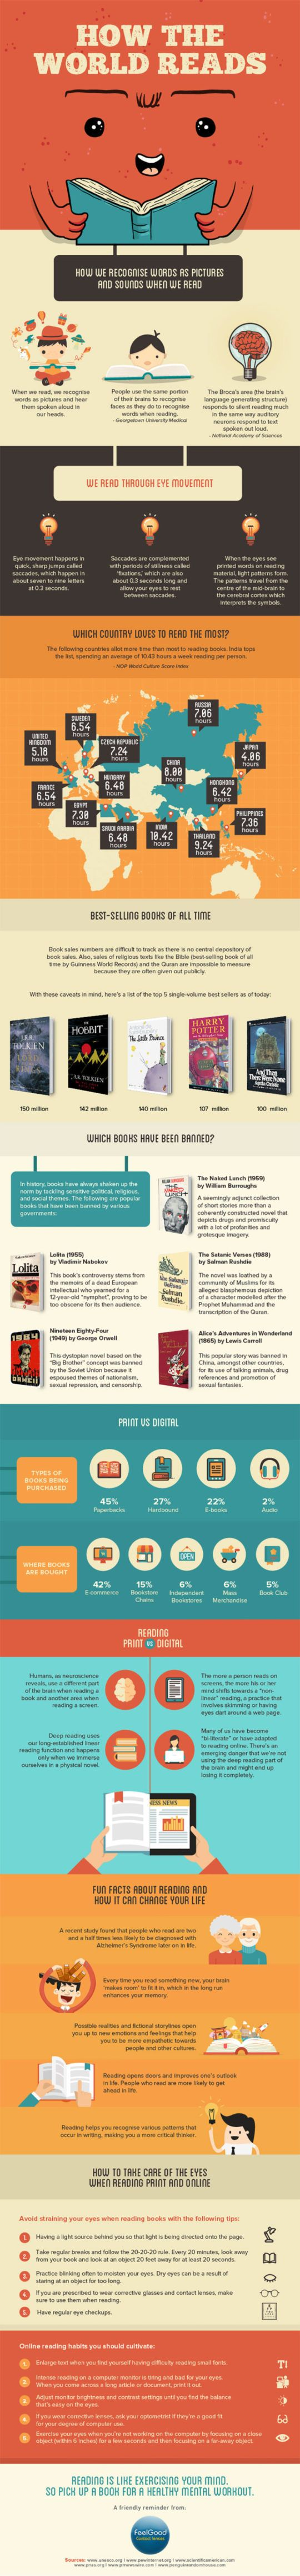 Best #book infographics of 2016: How the world reads